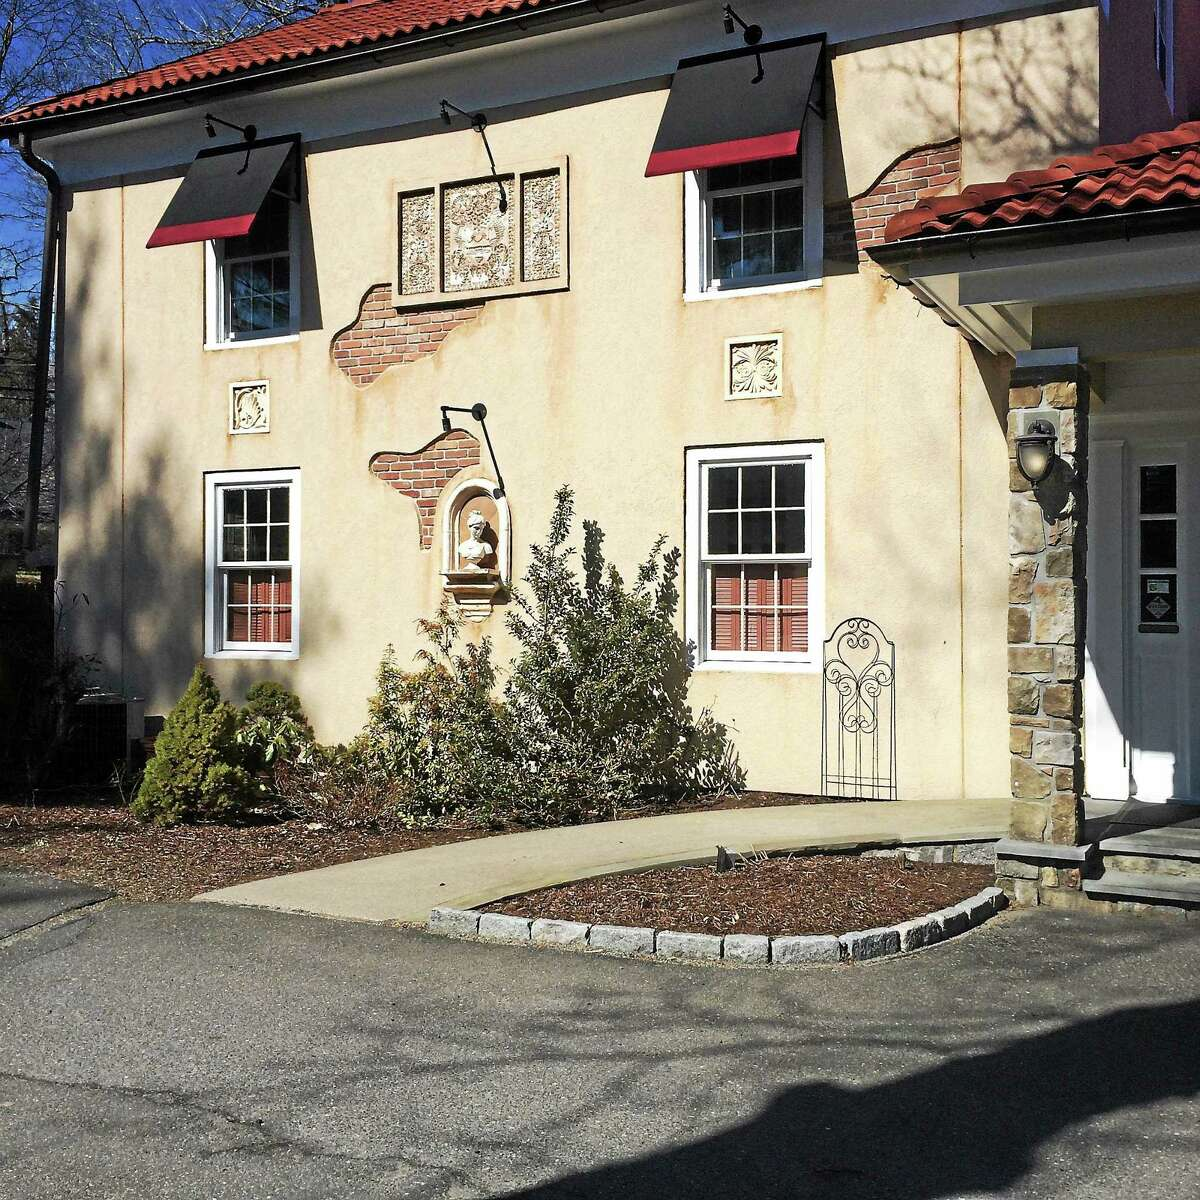 1 Twenty Two Restaurant is located in a rustic building at 122 Litchfield Road in New Milford.